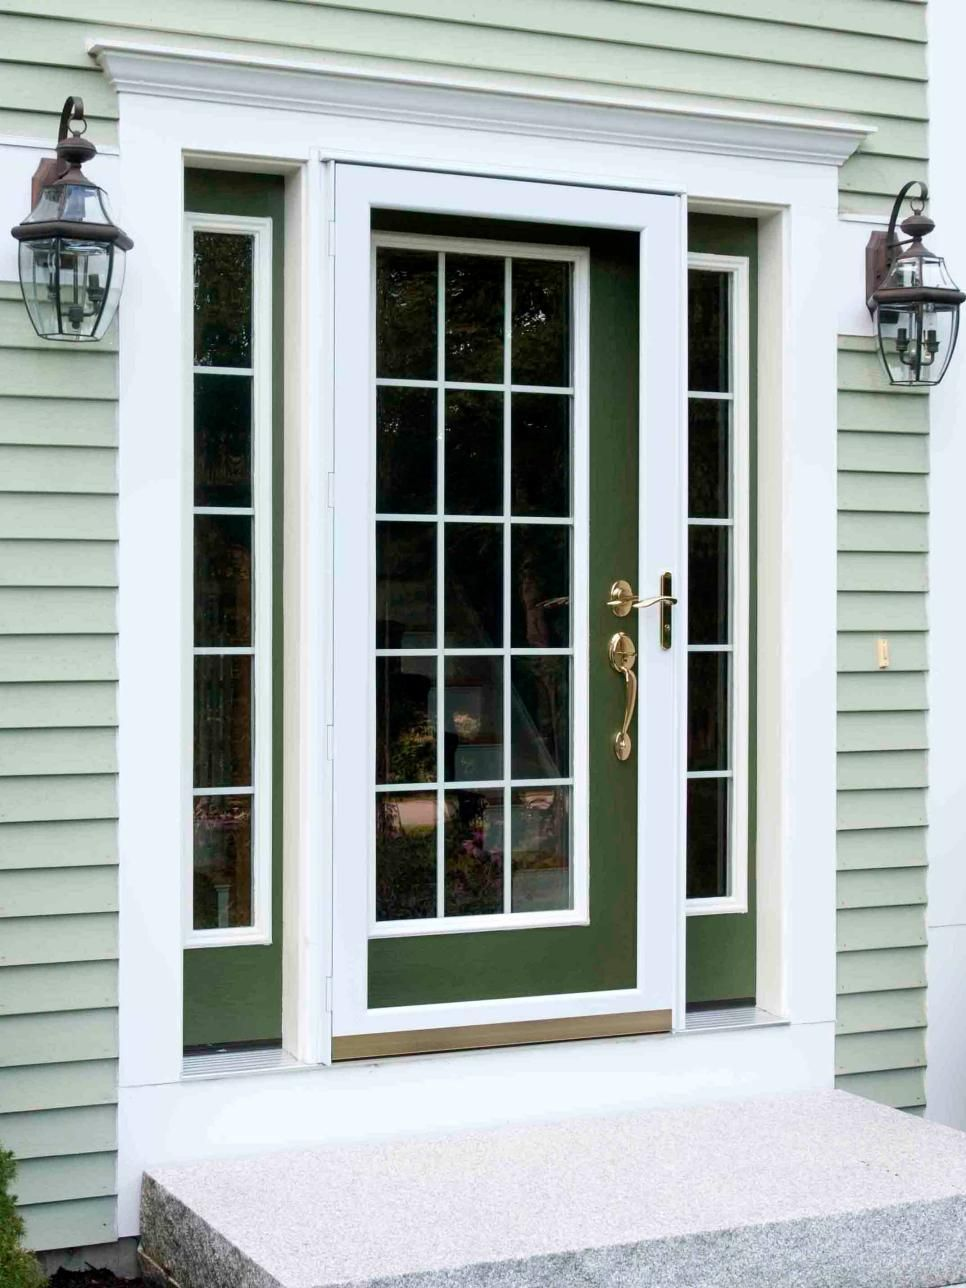 Popular Colors To Paint An Entry Door Curb Appeal Green Siding